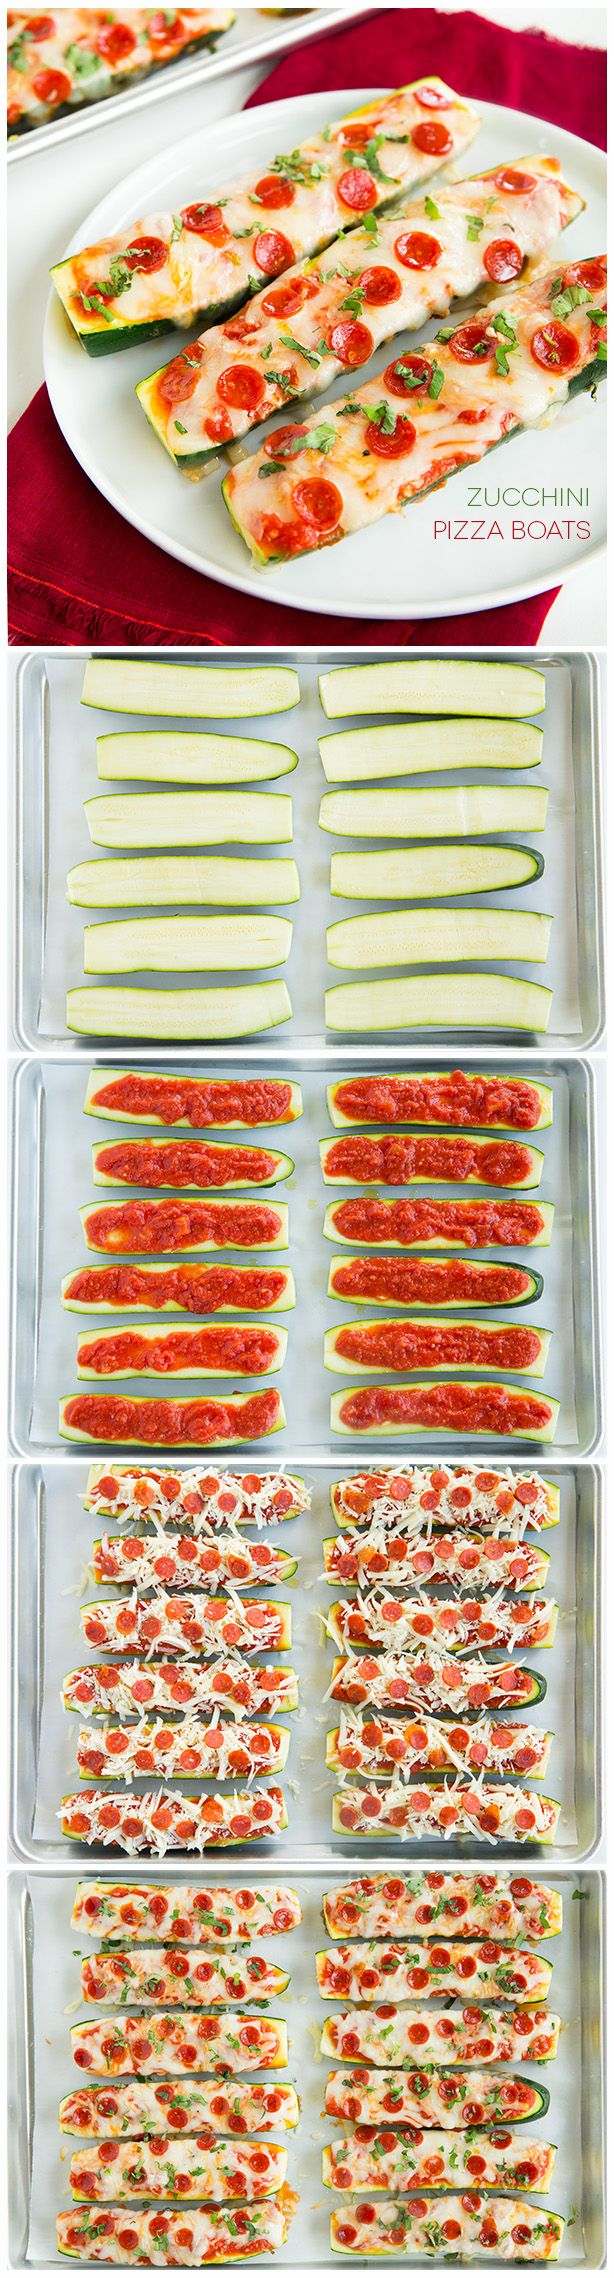 Zucchini Pizza Boats - takes about 10 mins to prep #lowcarb #Italian #zucchini #cheese